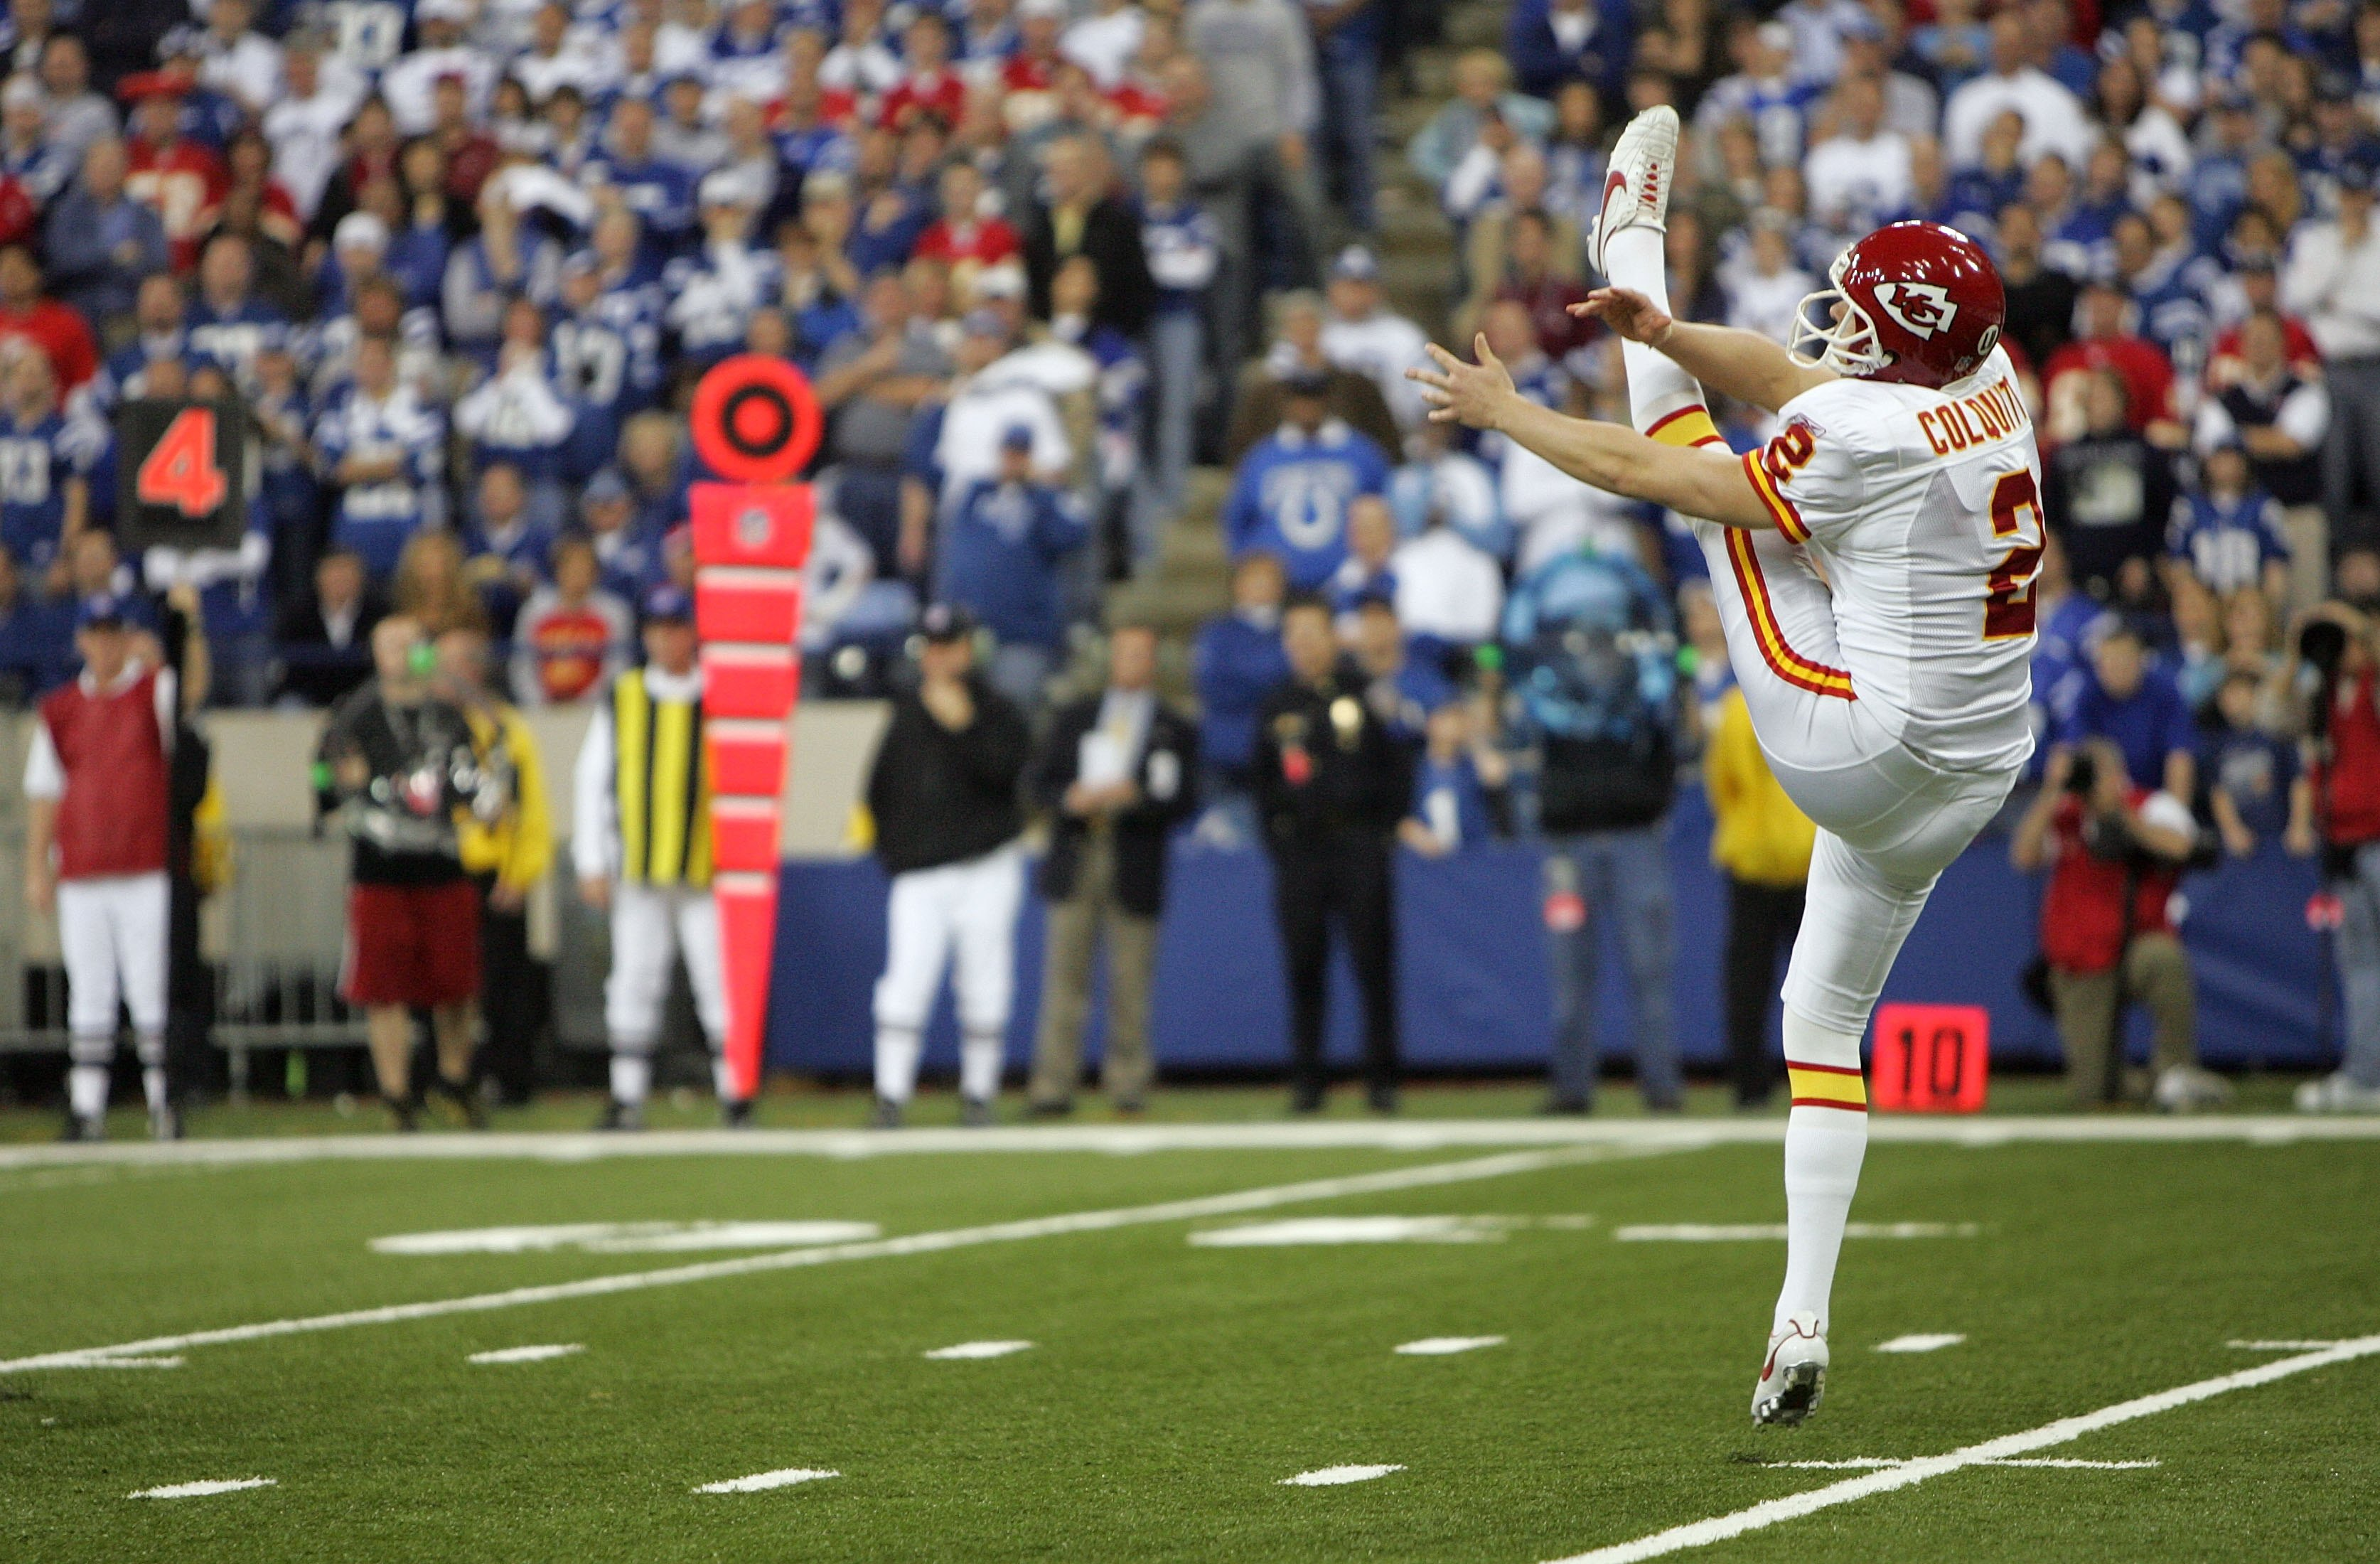 INDIANAPOLIS - JANUARY 06:  Punter Dustin Colquitt #2 of the Kansas City Chiefs follows through on a punt against the Indianapolis Colts during their AFC Wild Card Playoff Game January 6, 2007 at RCA Dome in Indianapolis, Indiana. The Colts won 23-8.  (Ph